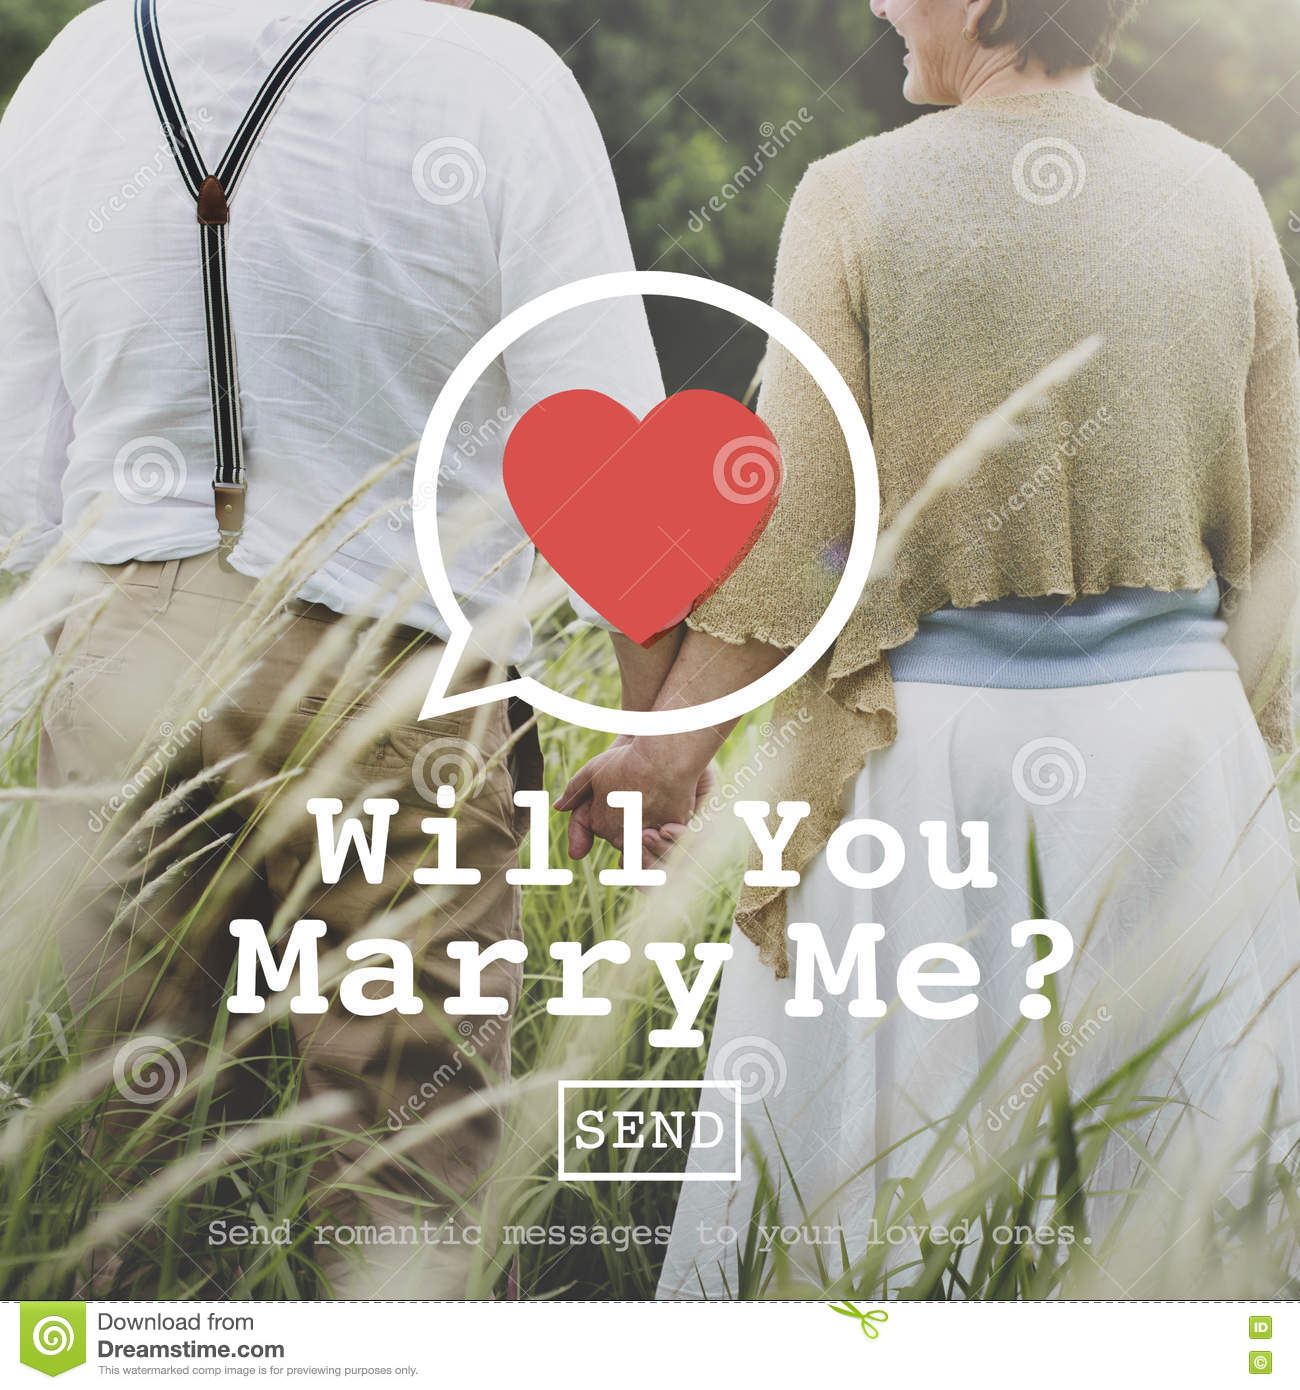 marry me already dating site